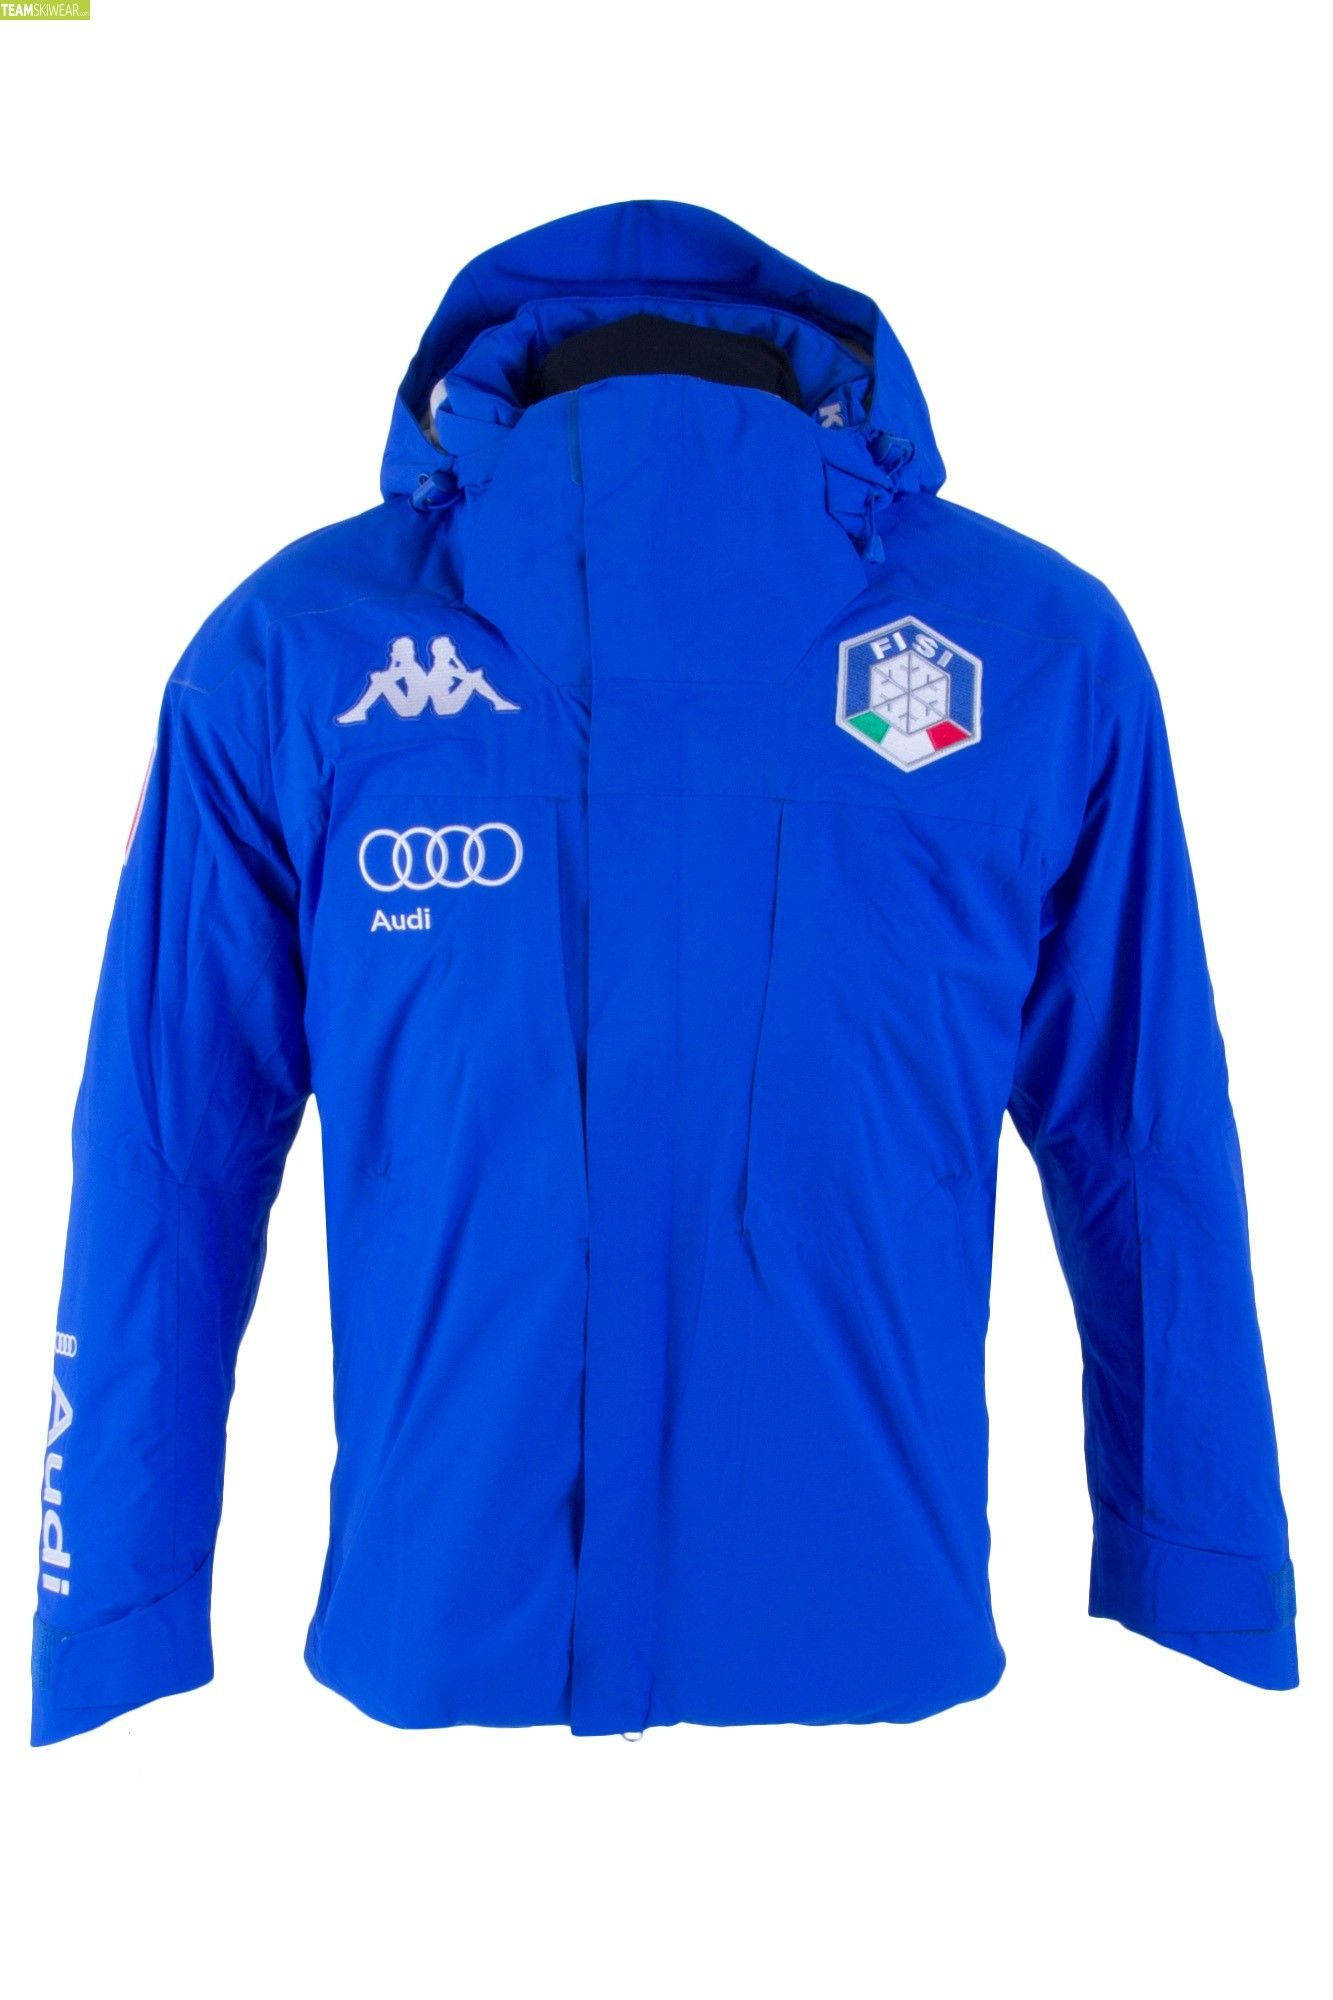 Kappa Men Italian Alpine Team FISI Jacket Blue Princess